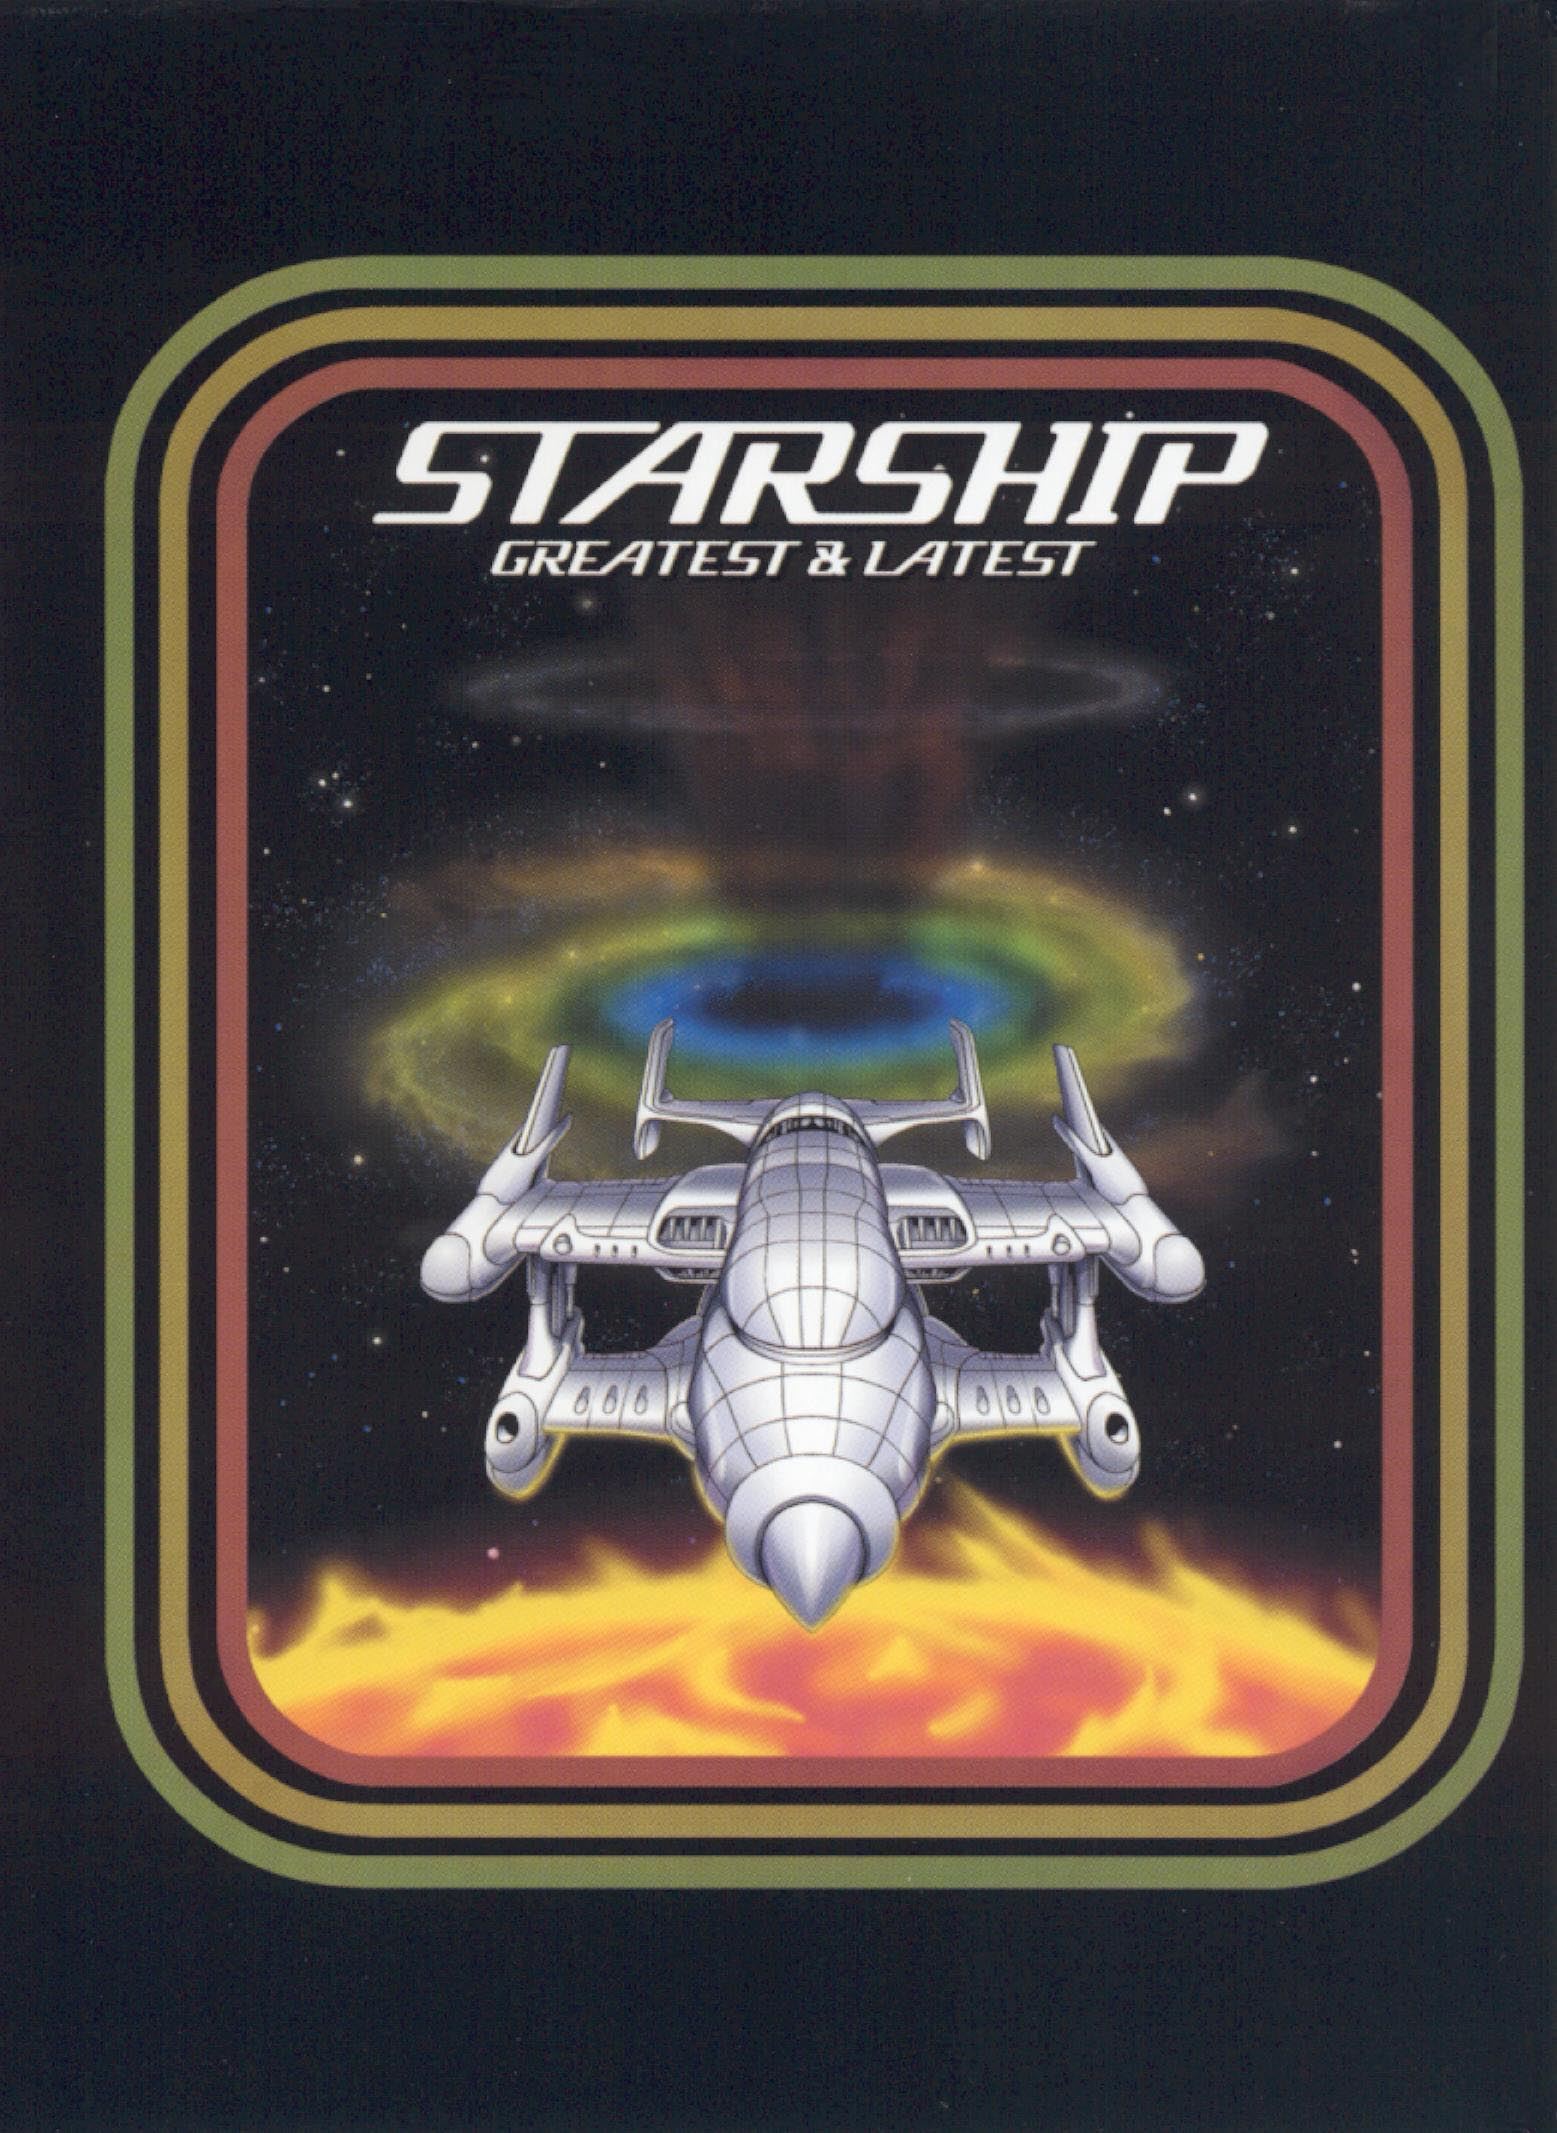 Starship: Greatest & Latest